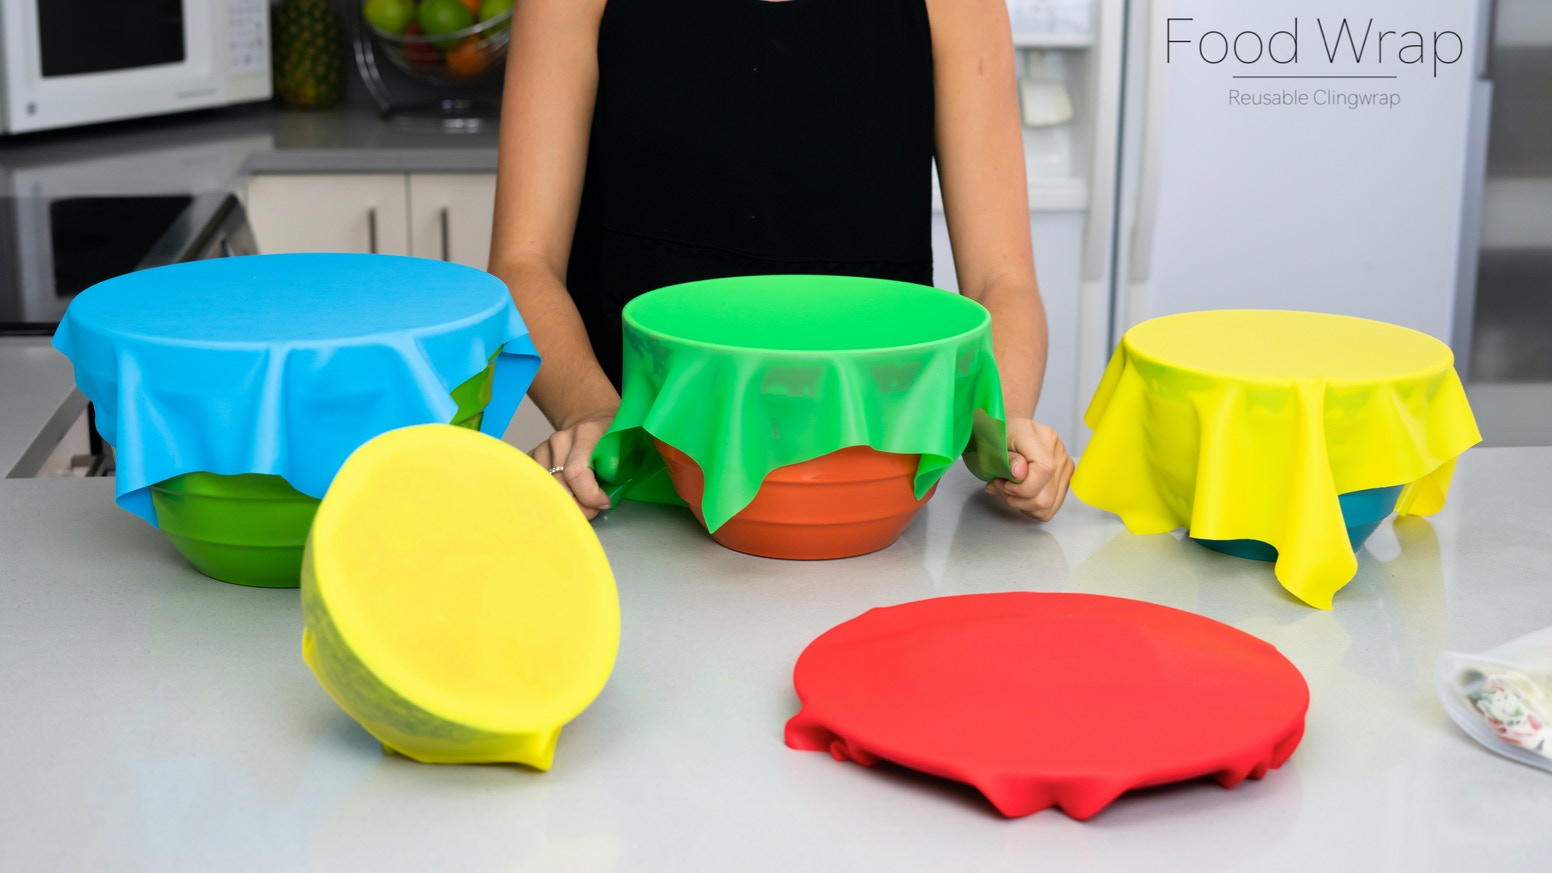 Food Wrap - Reusable Cling Wrap by Kim — Kickstarter